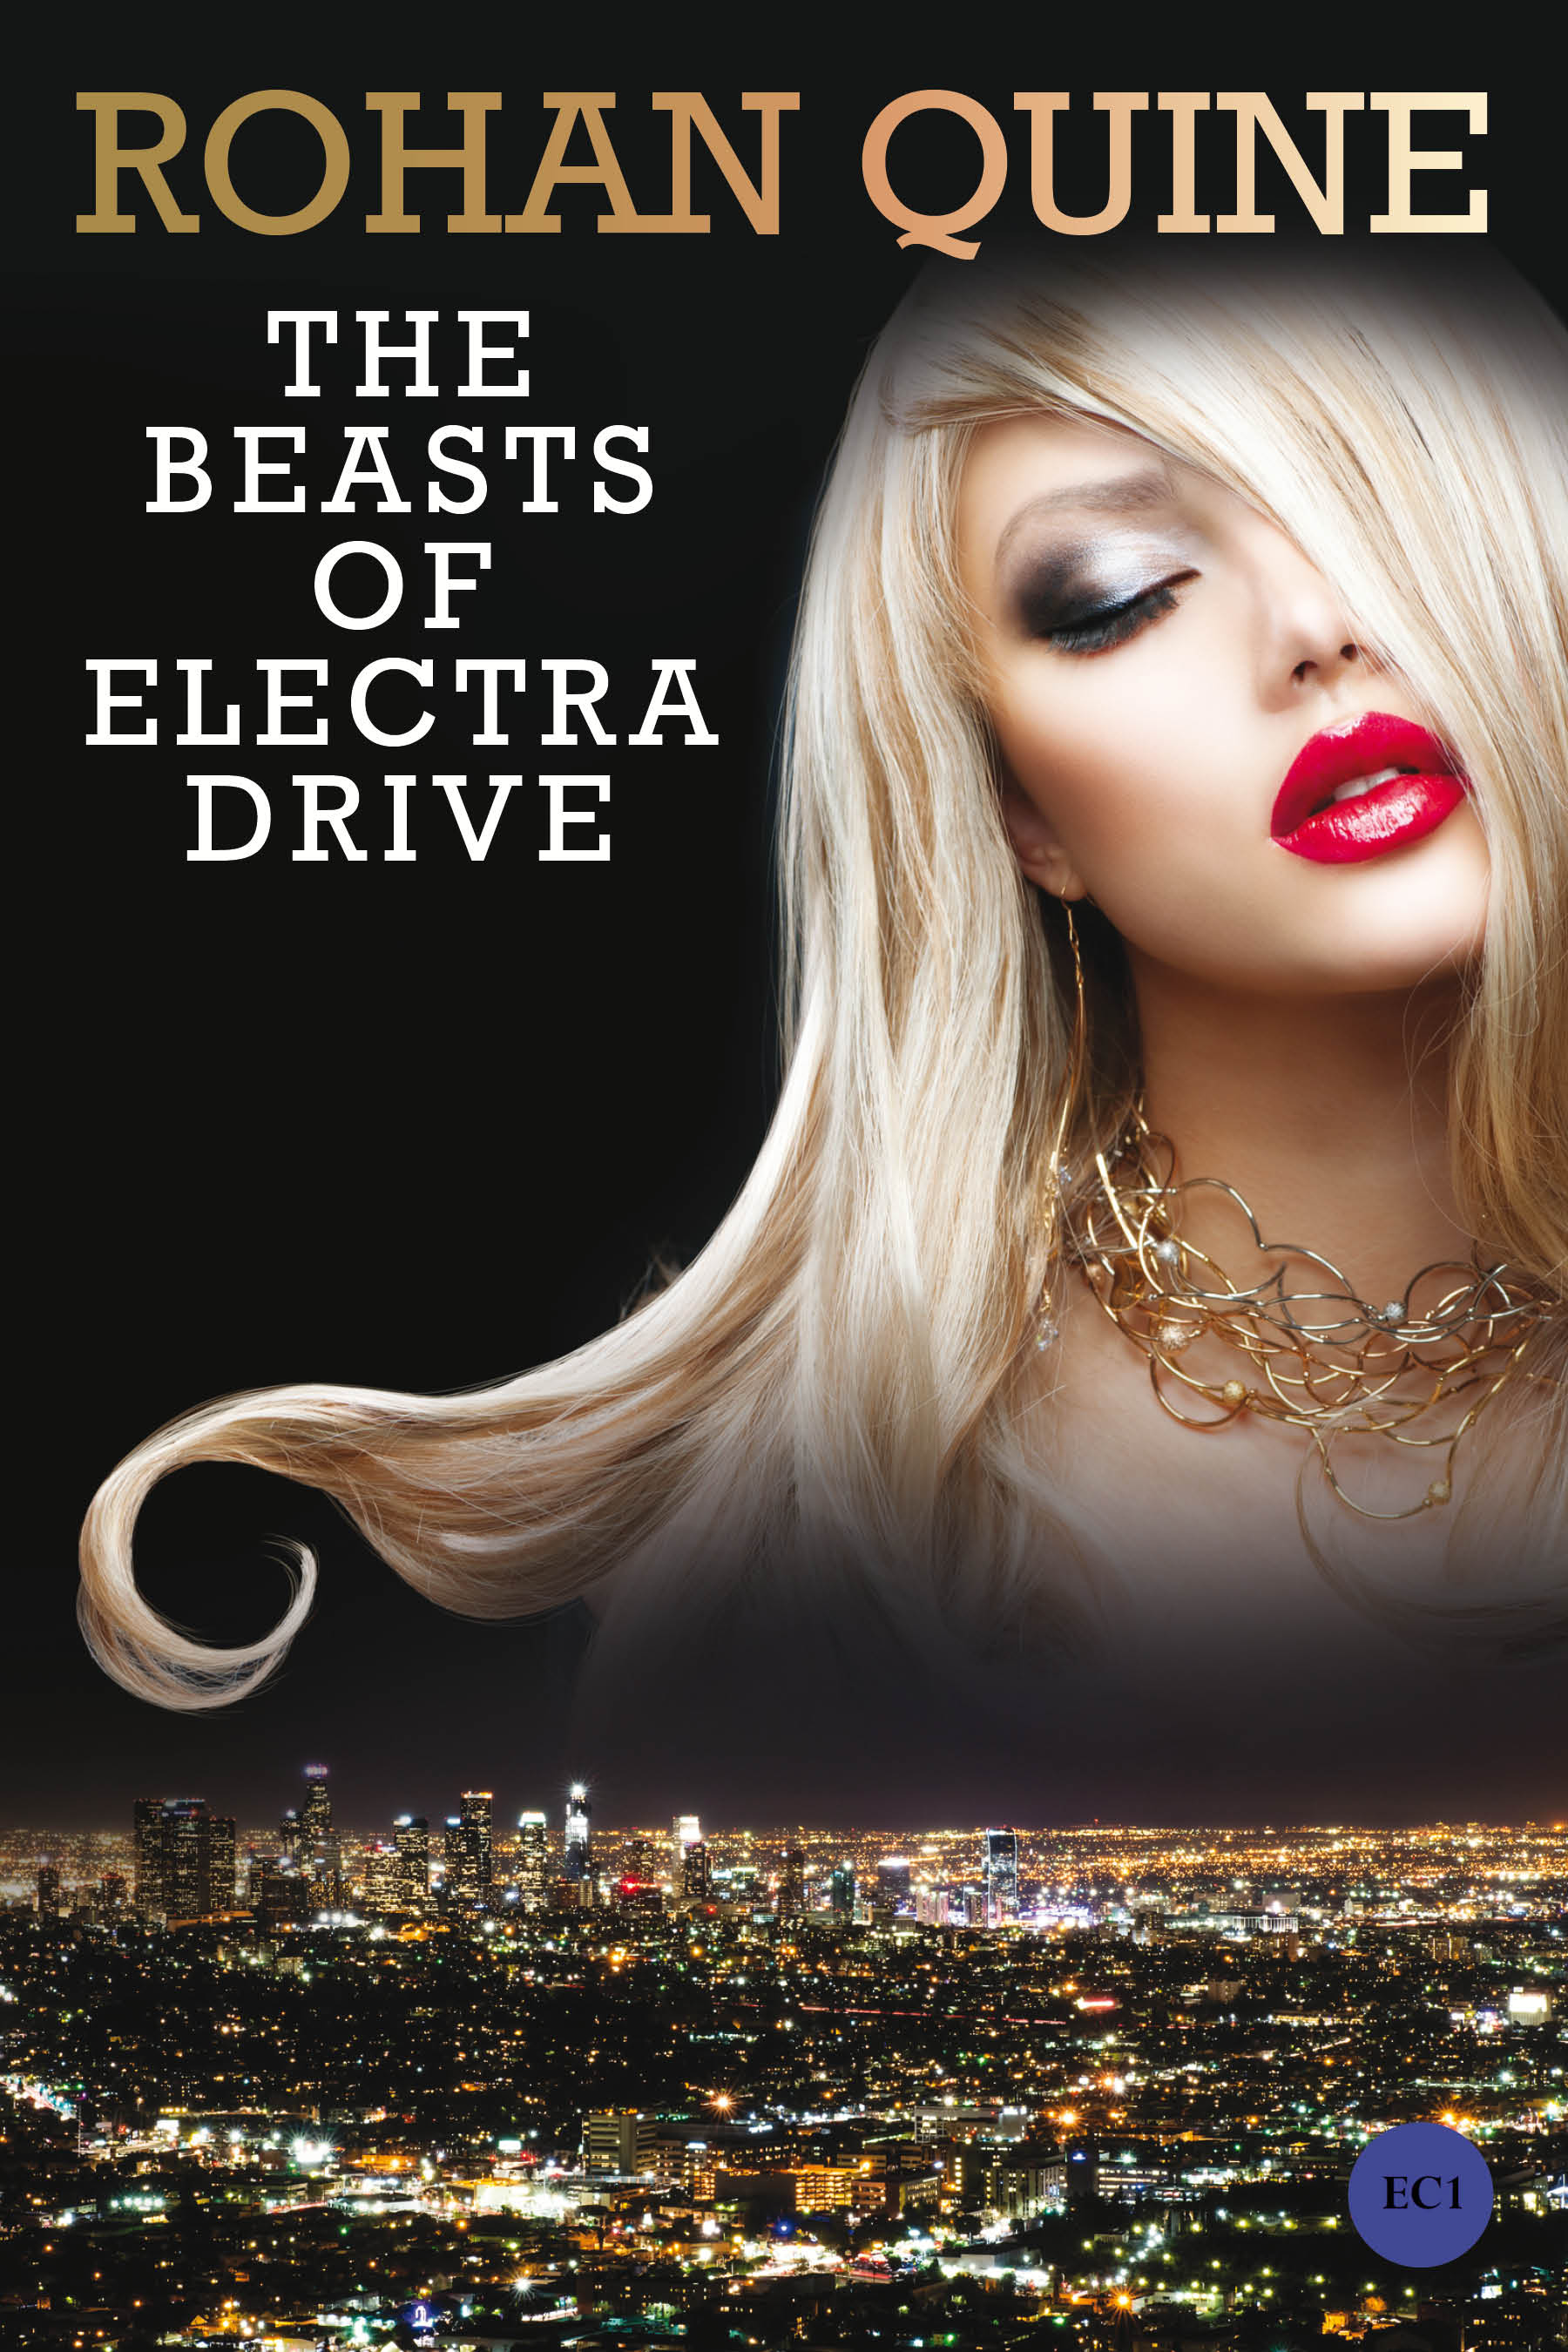 """Rohan Quine's """"The Beasts of Electra Drive"""" a Finalist in IAN Book of the Year Awards"""